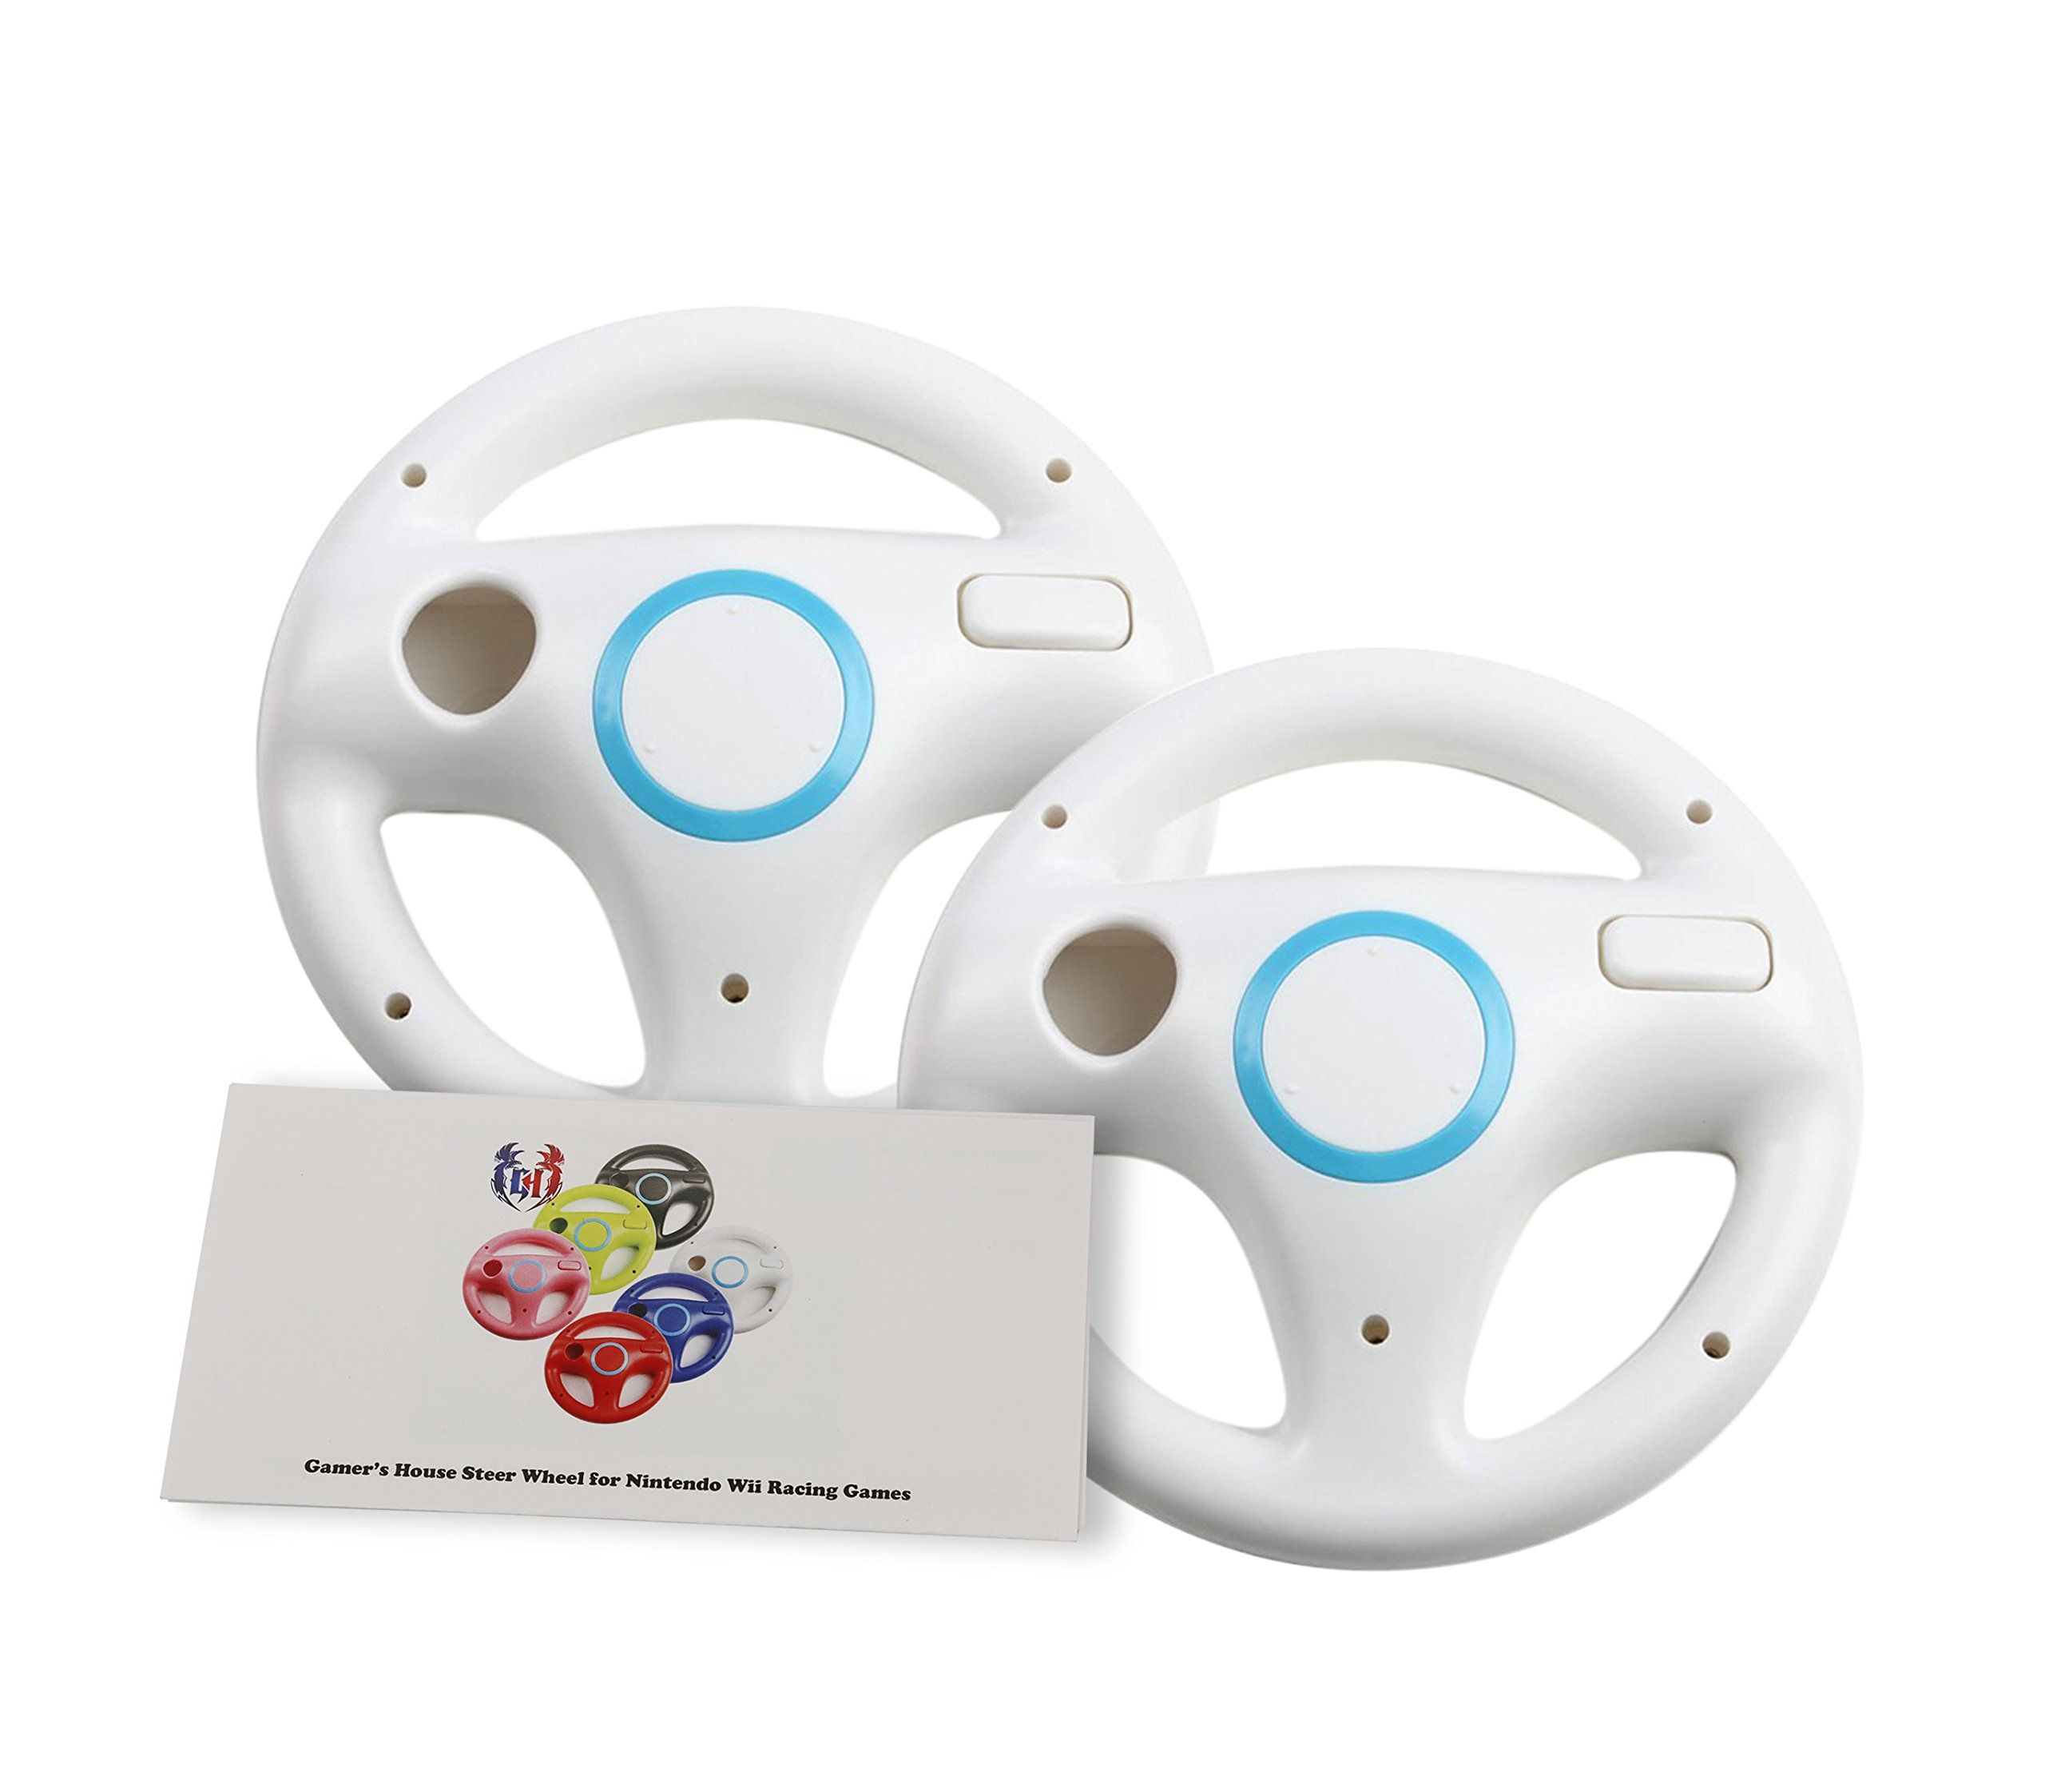 Gh 2 Pack Wii Steering Wheel For Mario Kart 8 And Other Nintendo Remote Driving Games Wii U Racing Wheel For Remote Plus Cont Wii Accessories Mario Kart Wii